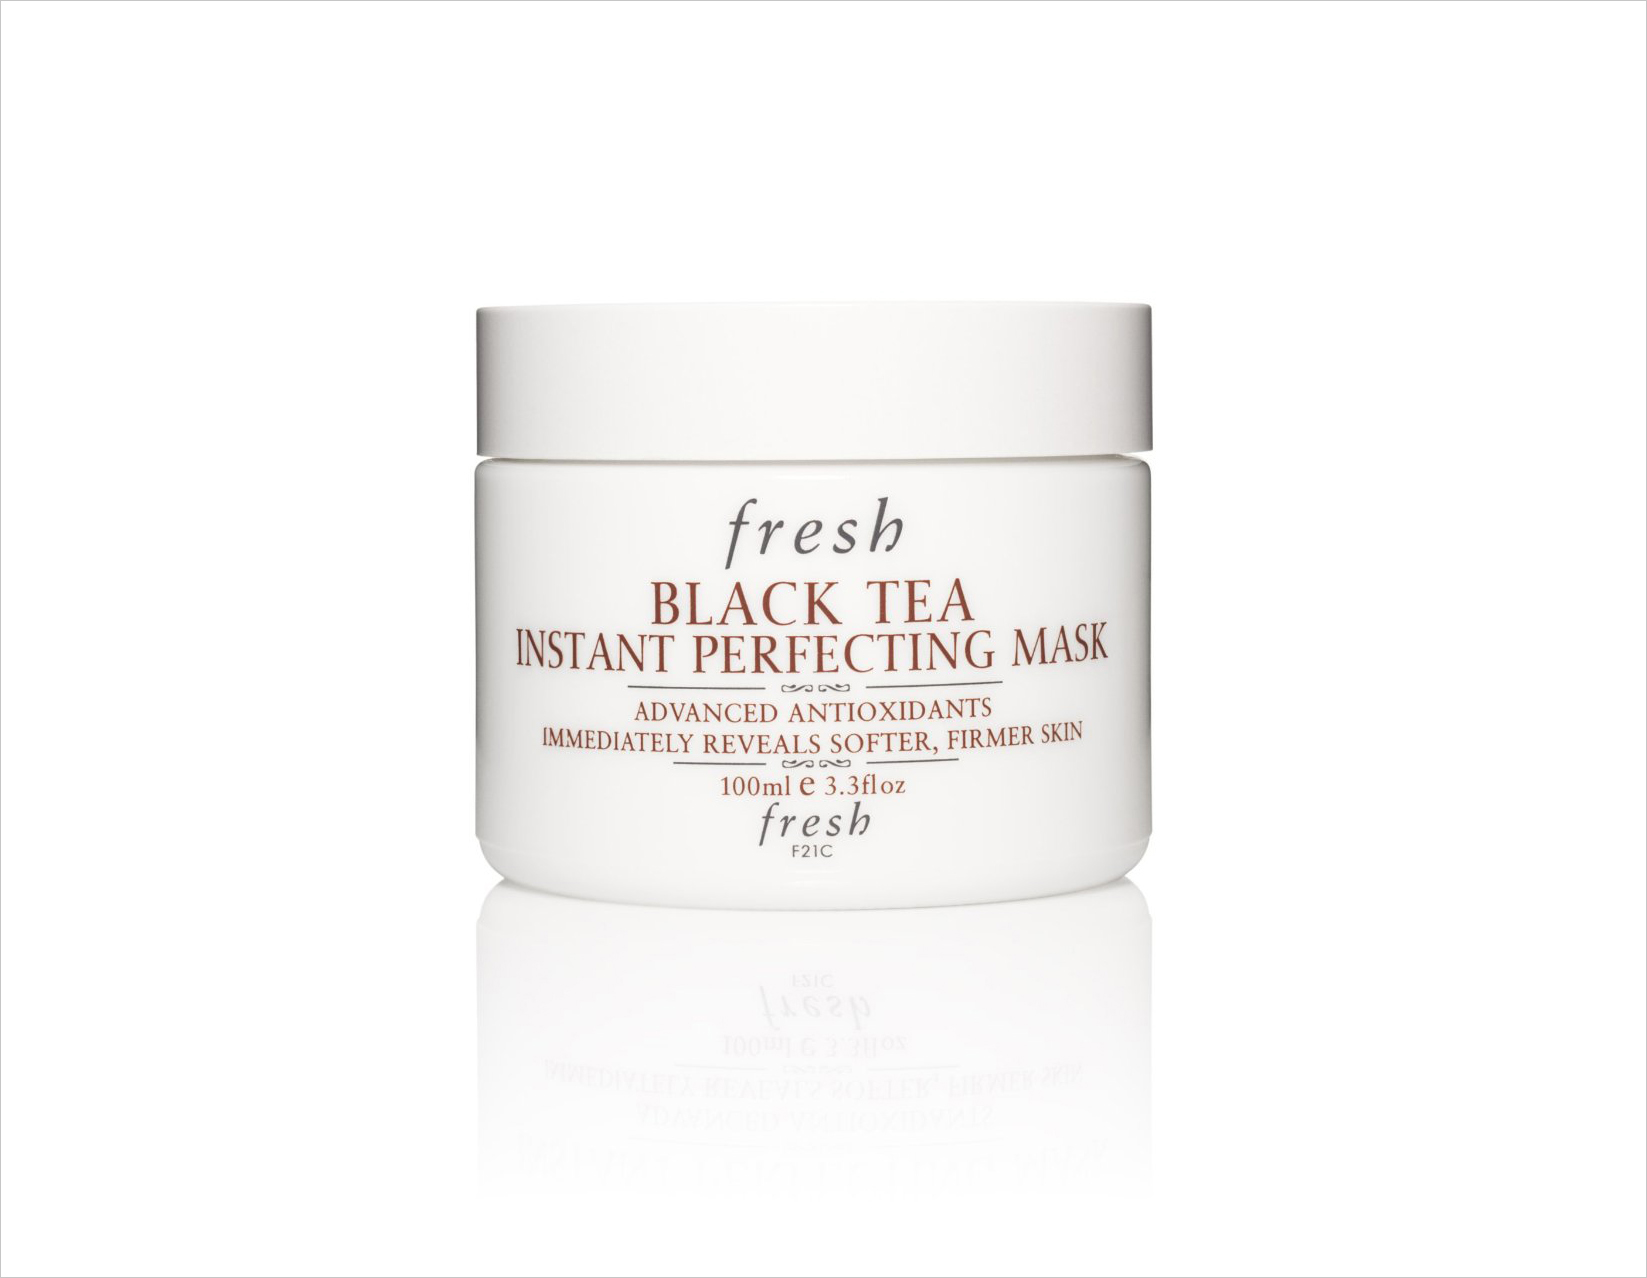 Fresh black tea perfecting mask bridal relaxation tips and products